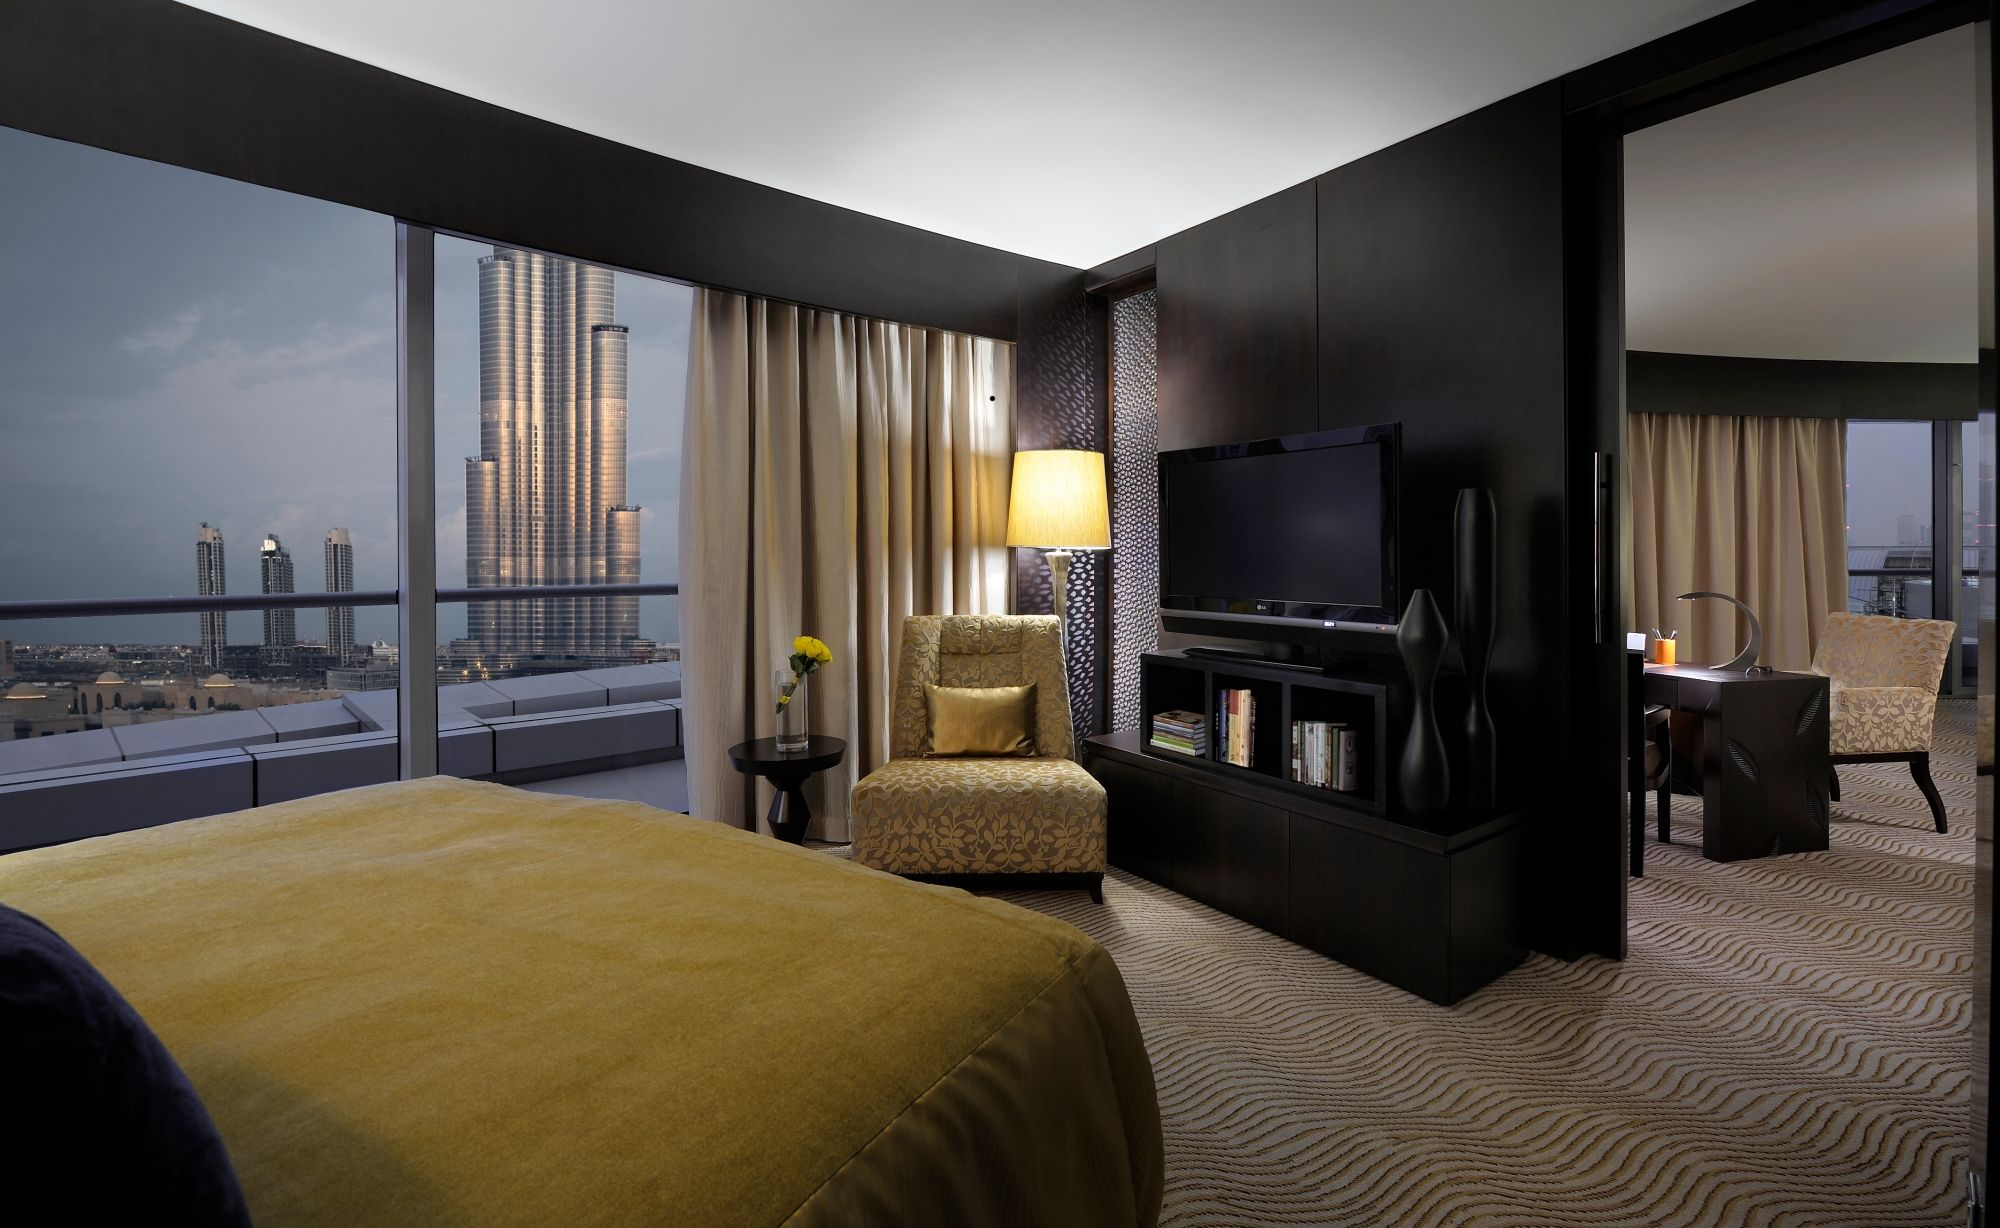 Armani hotel dubai google search hotels pinterest for Armani hotel dubai design